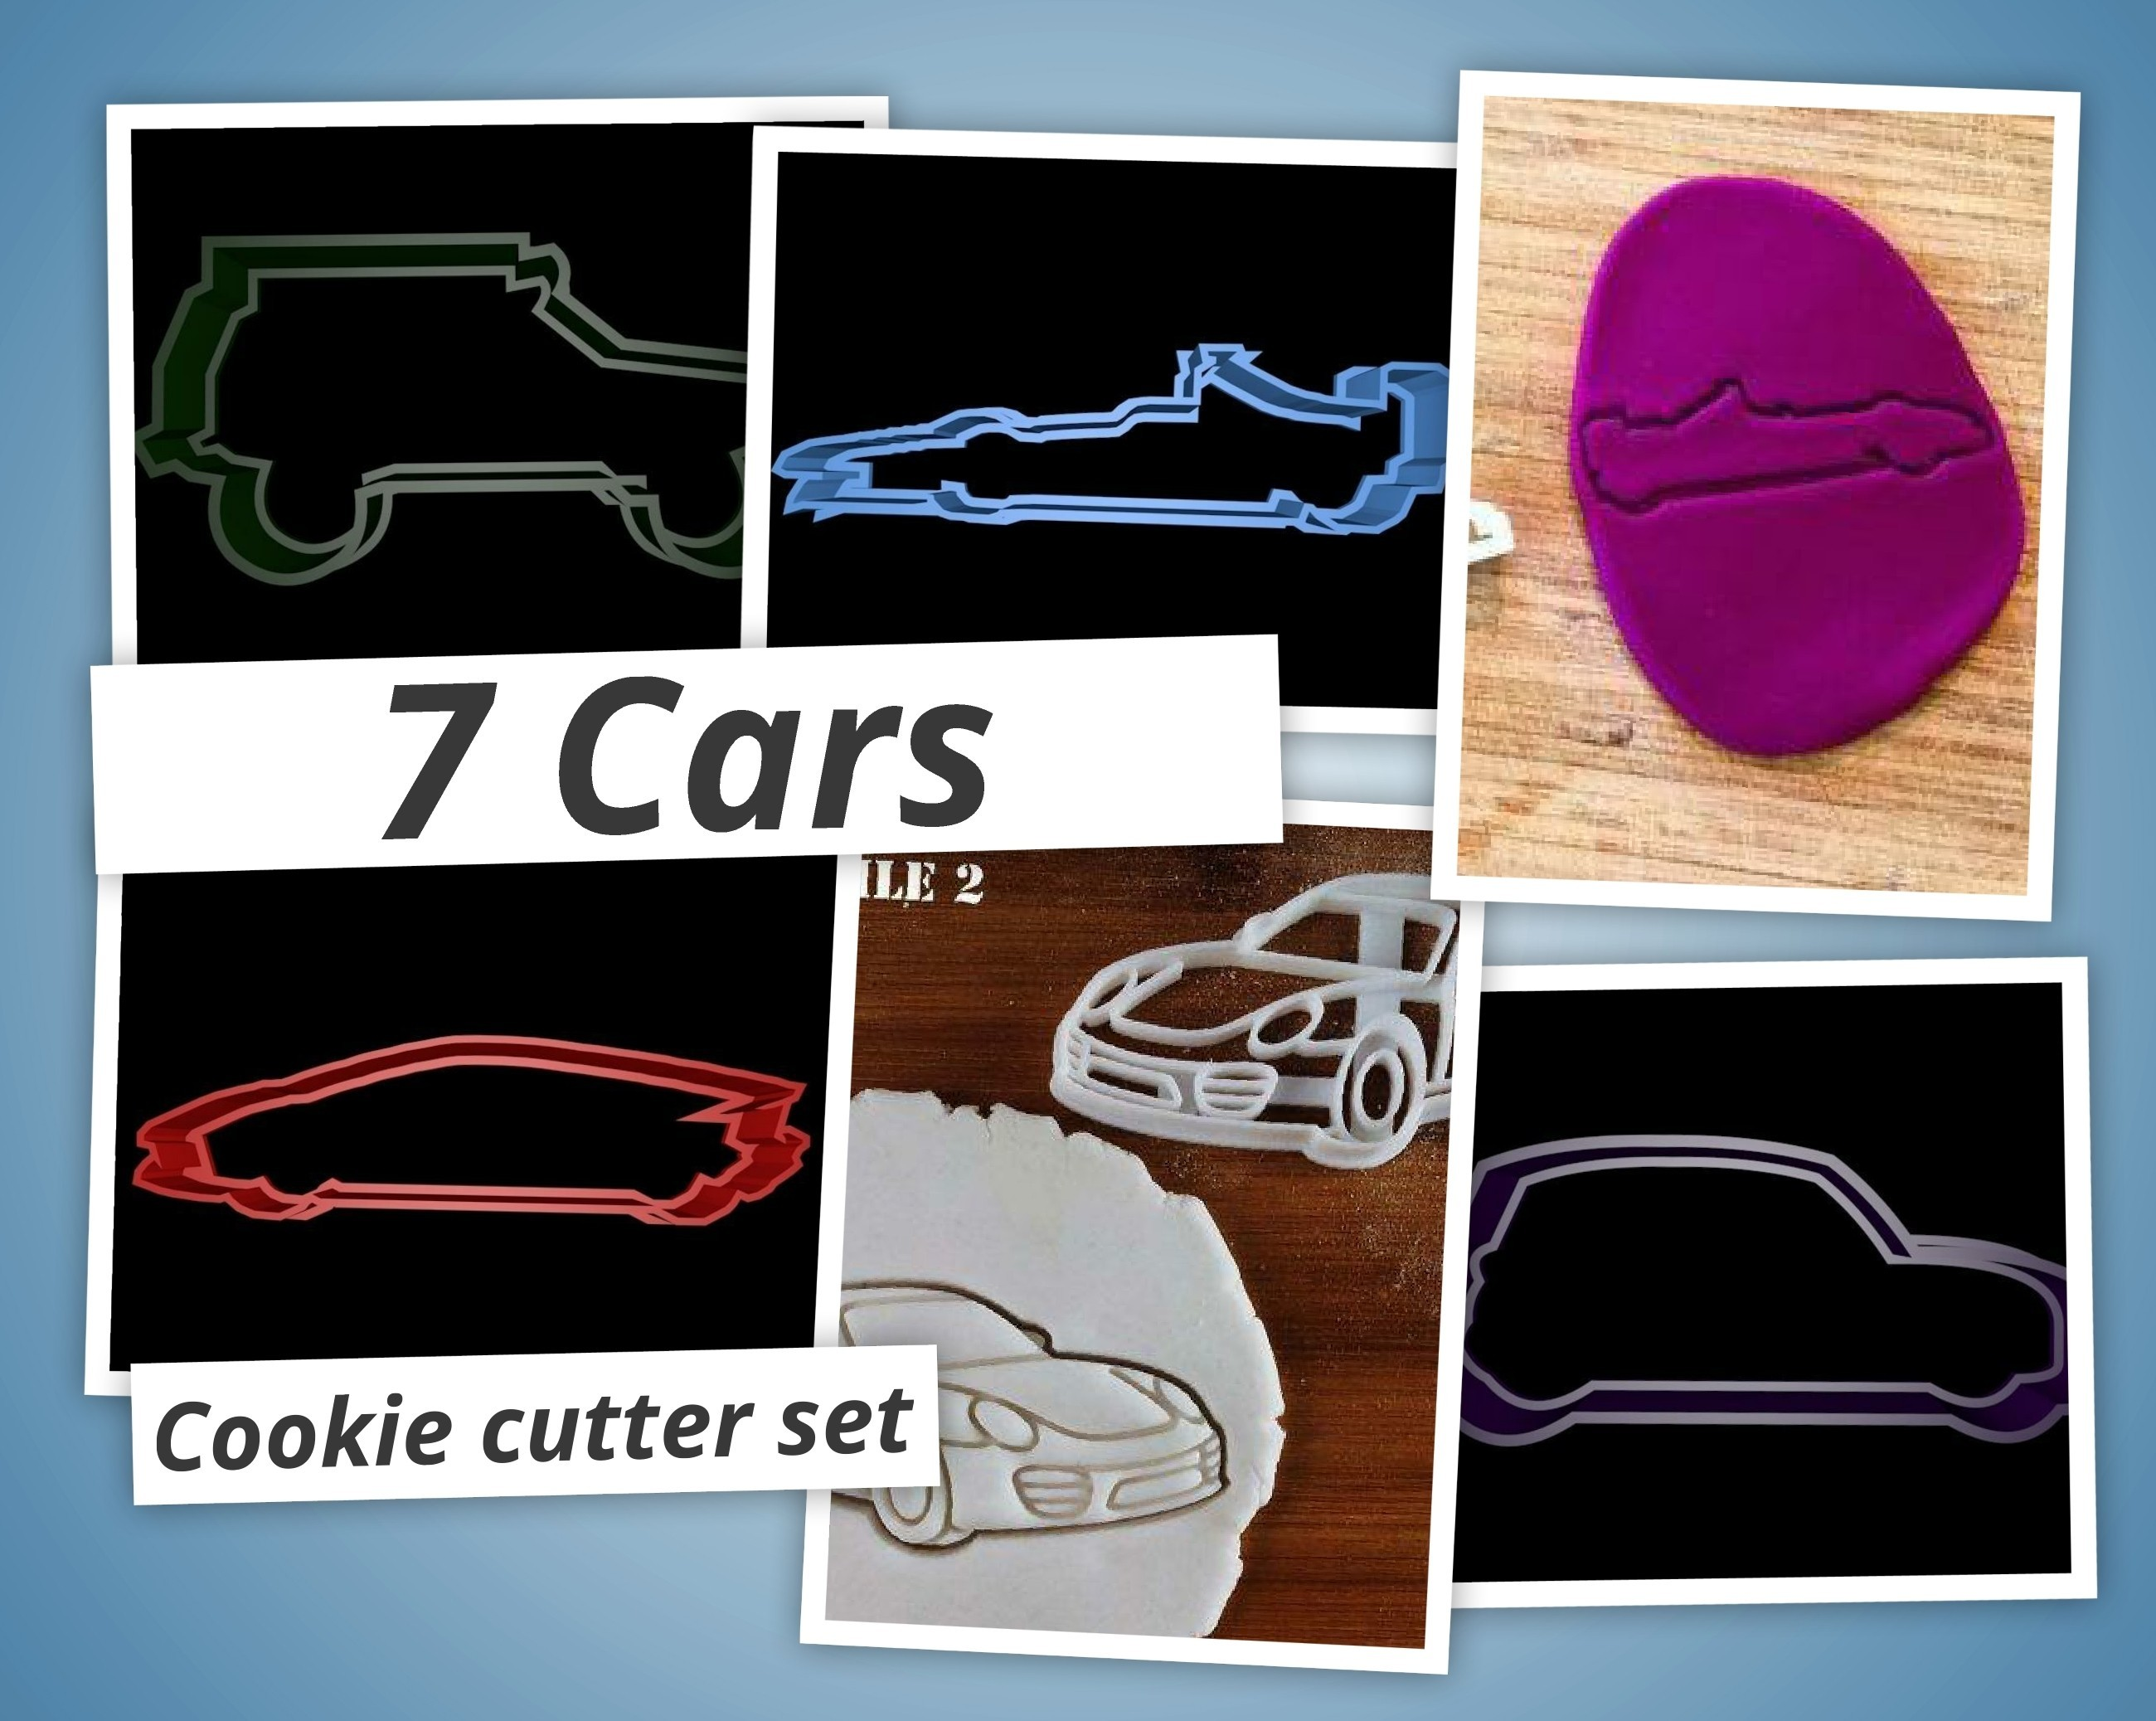 pf_1530259431.jpg Download STL file Cars cookie cutter set • 3D printable object, davidruizo